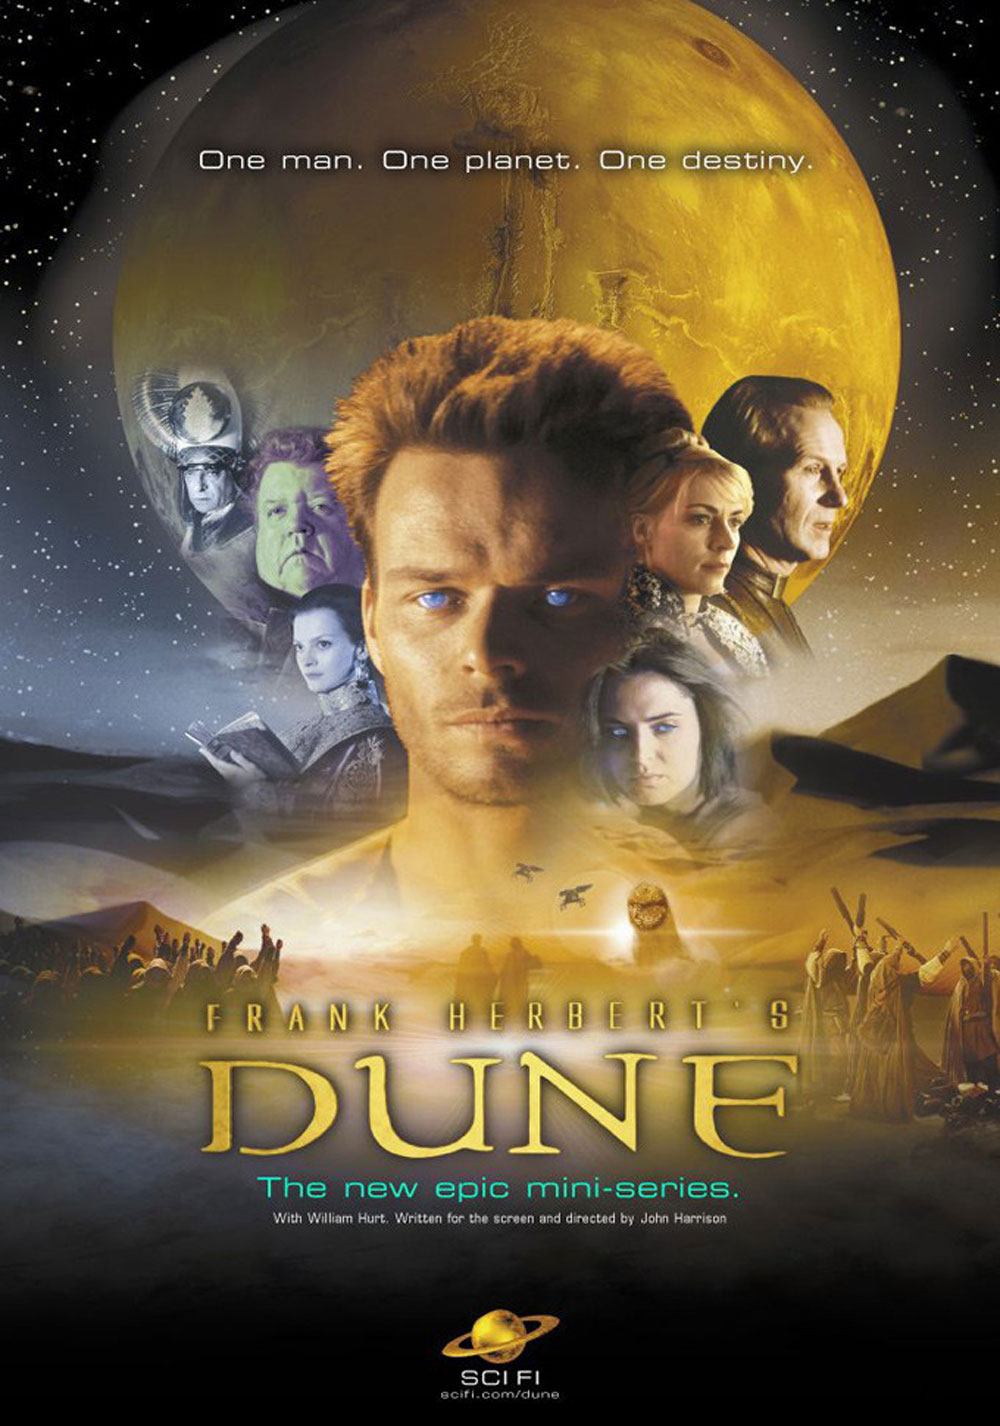 dune mini s233rie sciencefictionarchivescom